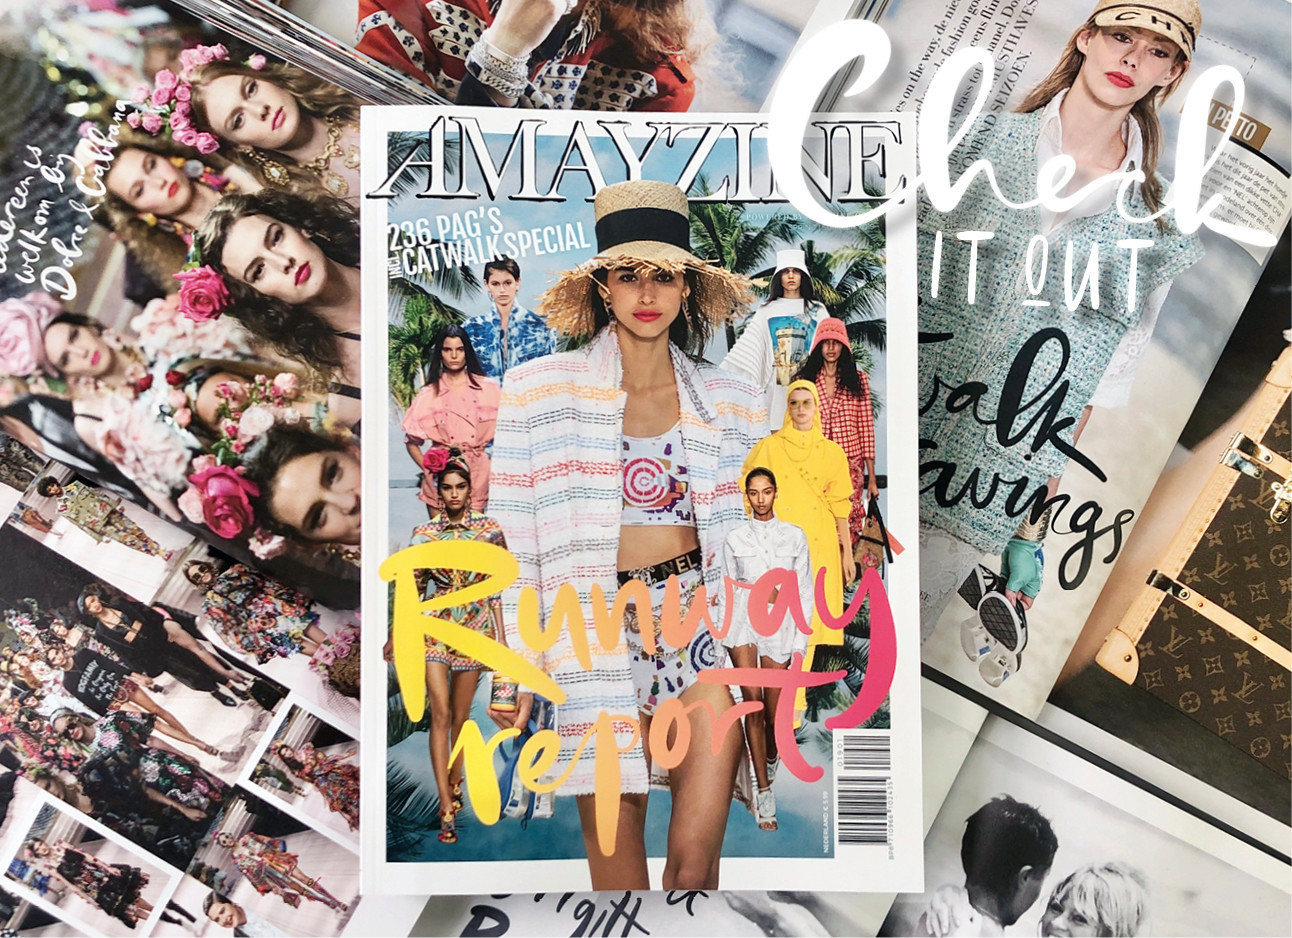 runway issue amayzine lading on top of magazines